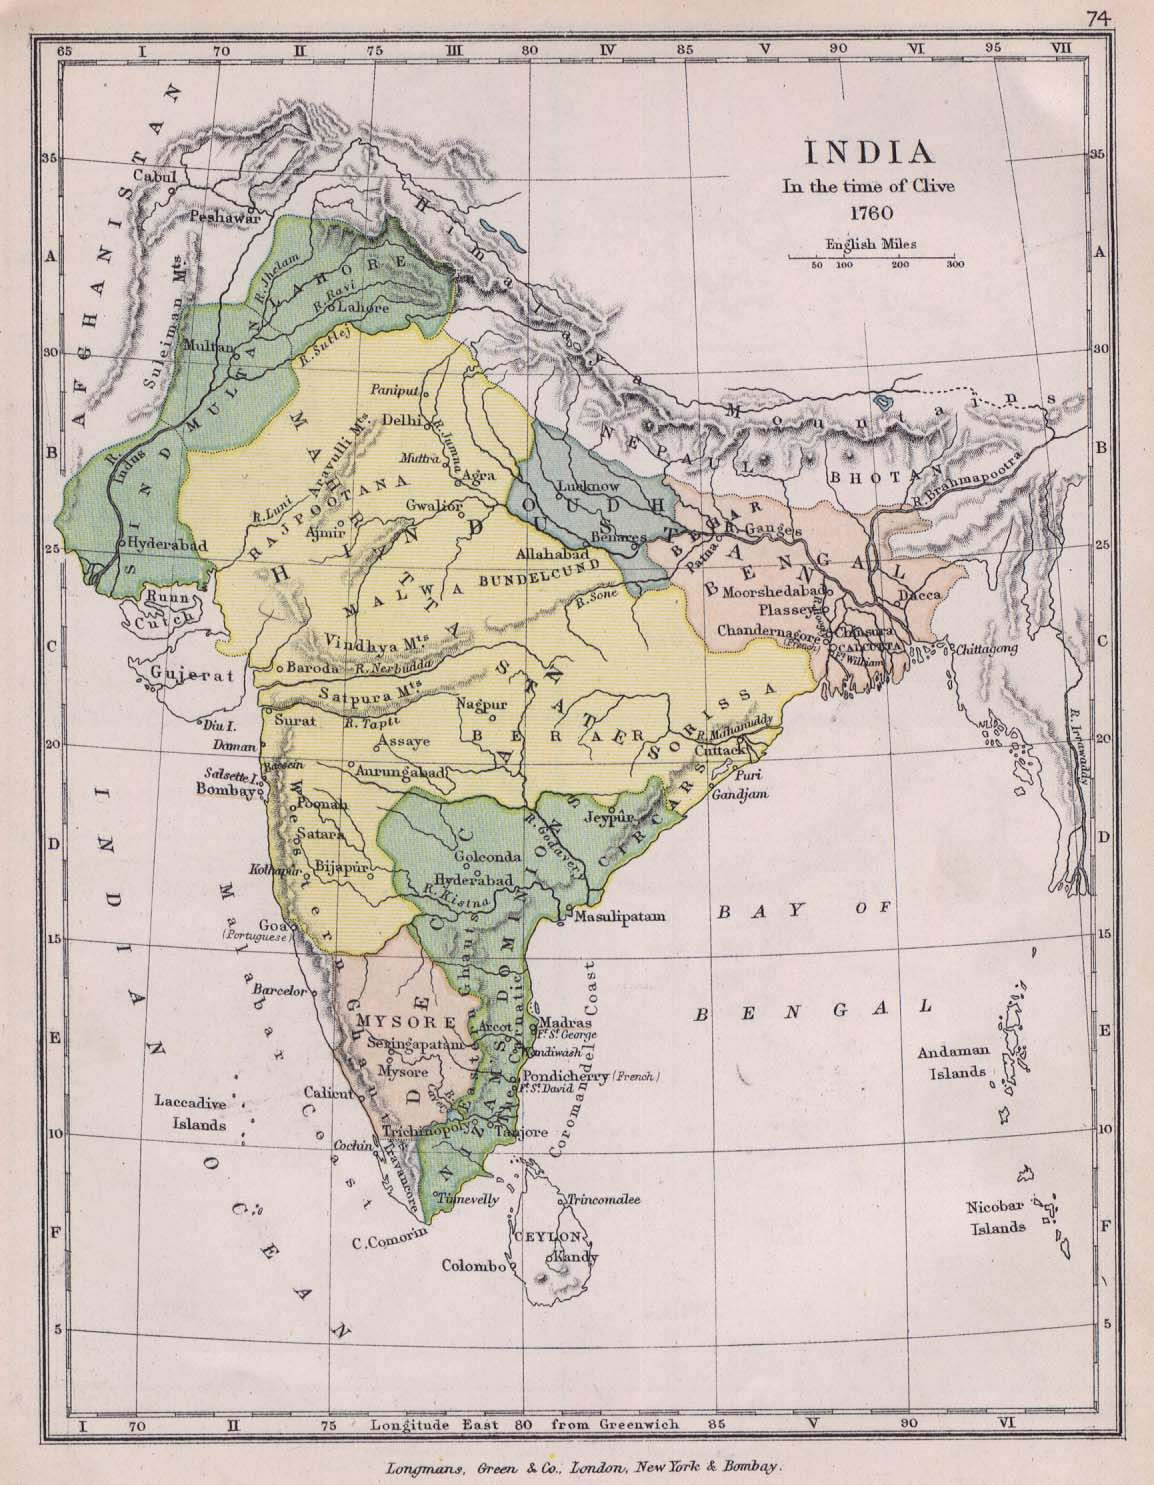 historical-map-of-india-in-1760